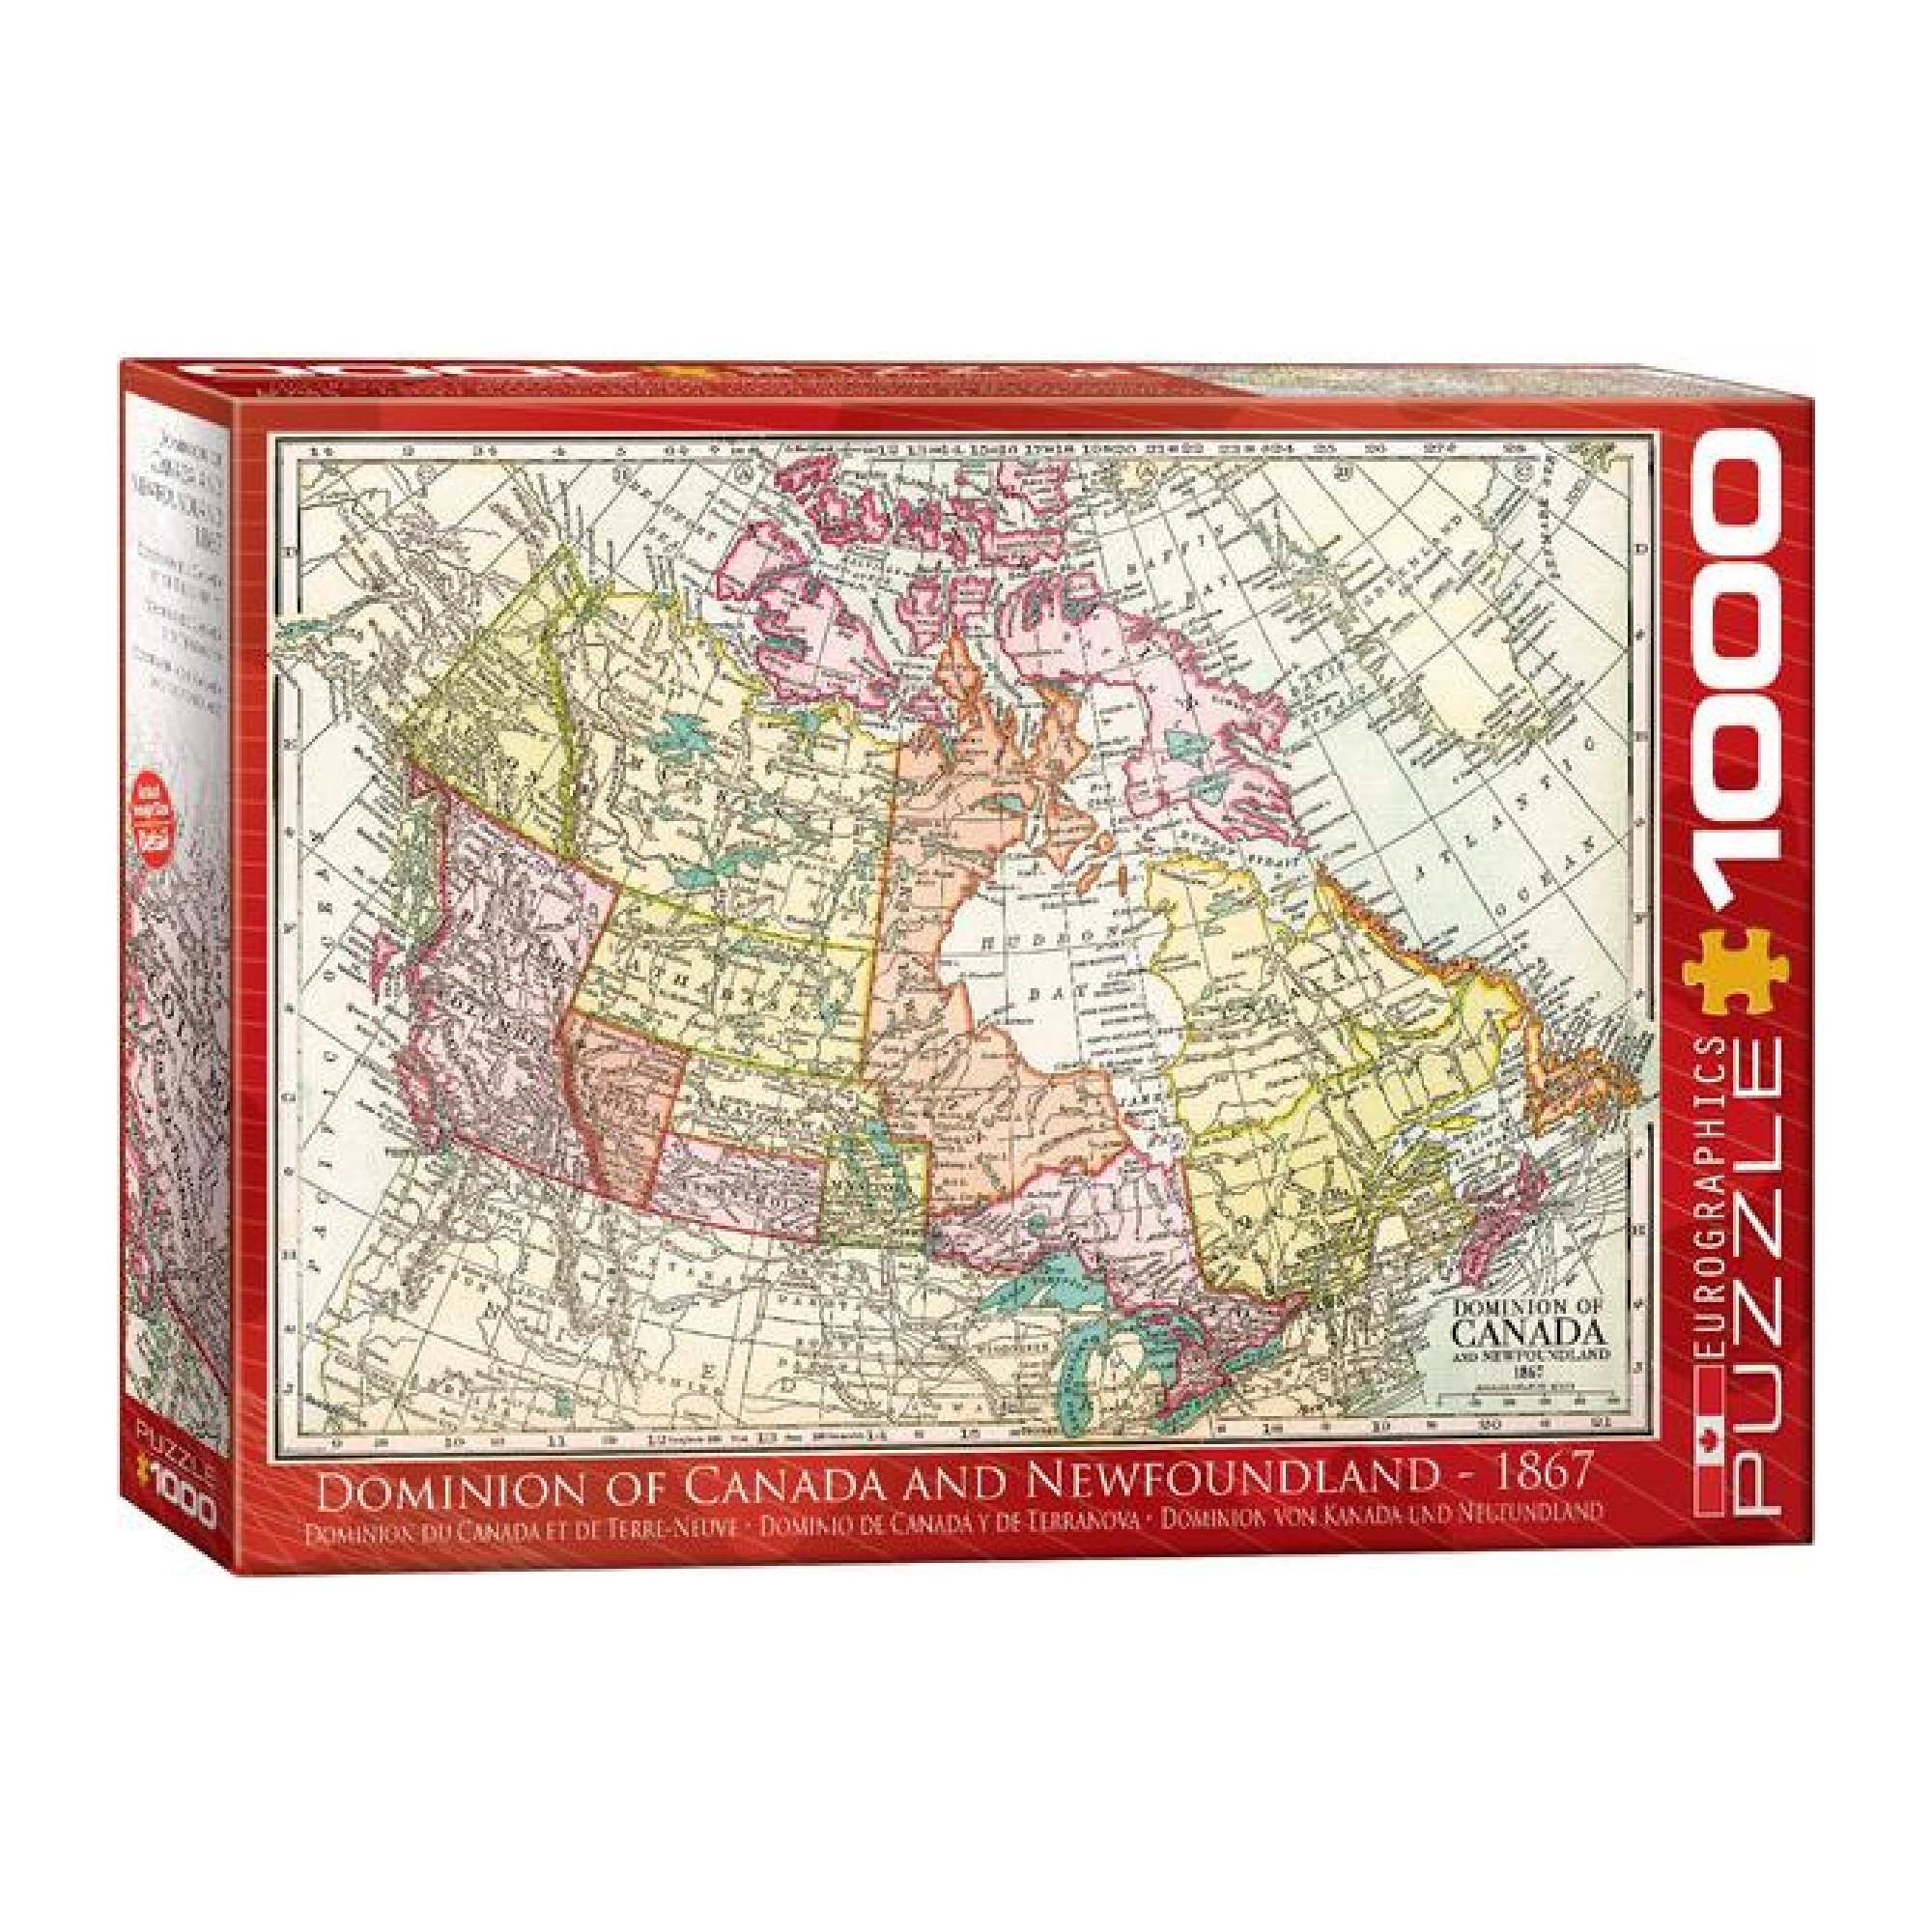 Eurographics Puzzle 1000: Dominion of Canada and Newfoundland